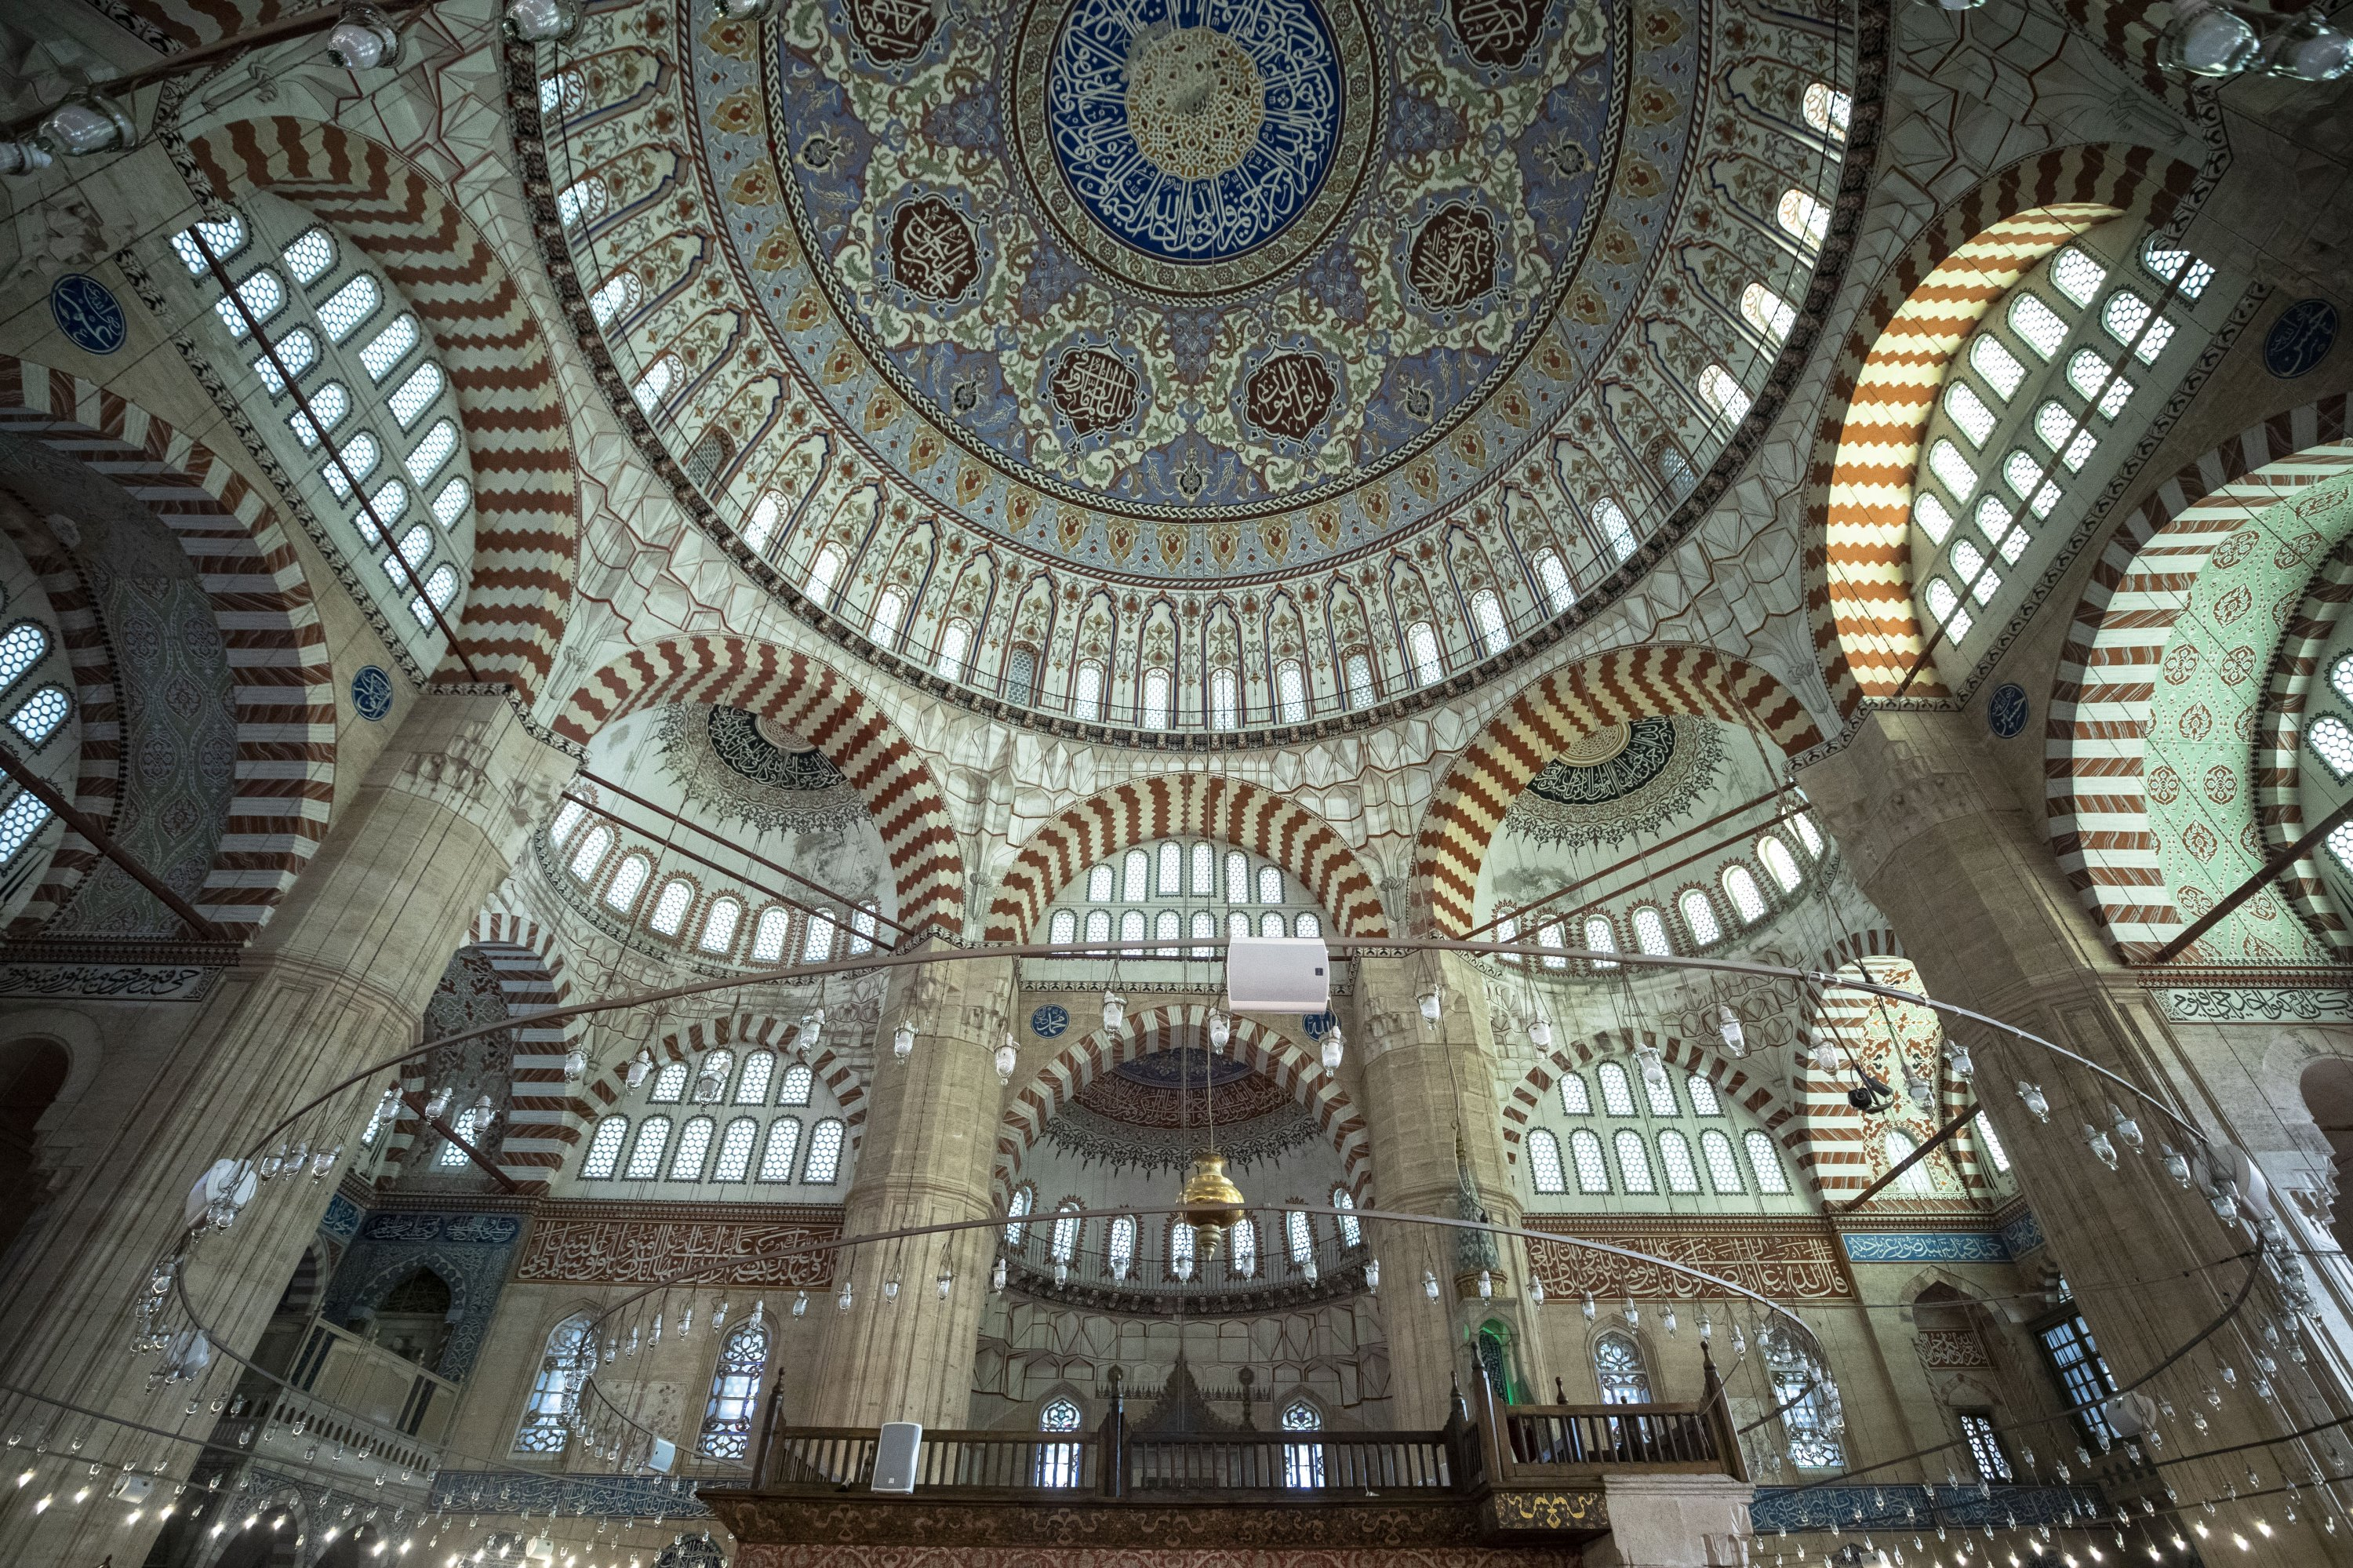 The ceiling of Selimiye Mosque in Edirne, Turkey, Aug. 30, 2020. (Getty Images)